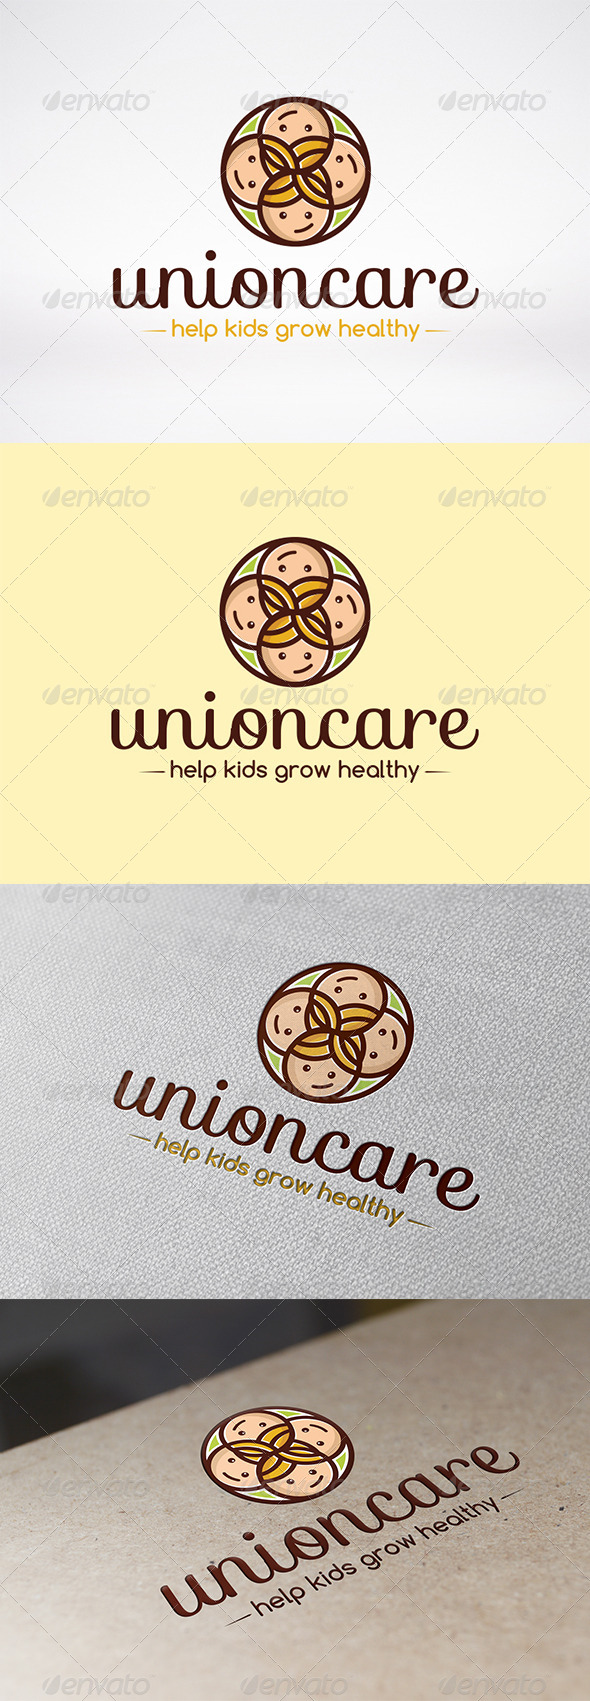 GraphicRiver Unity Care Logo Template 6240047